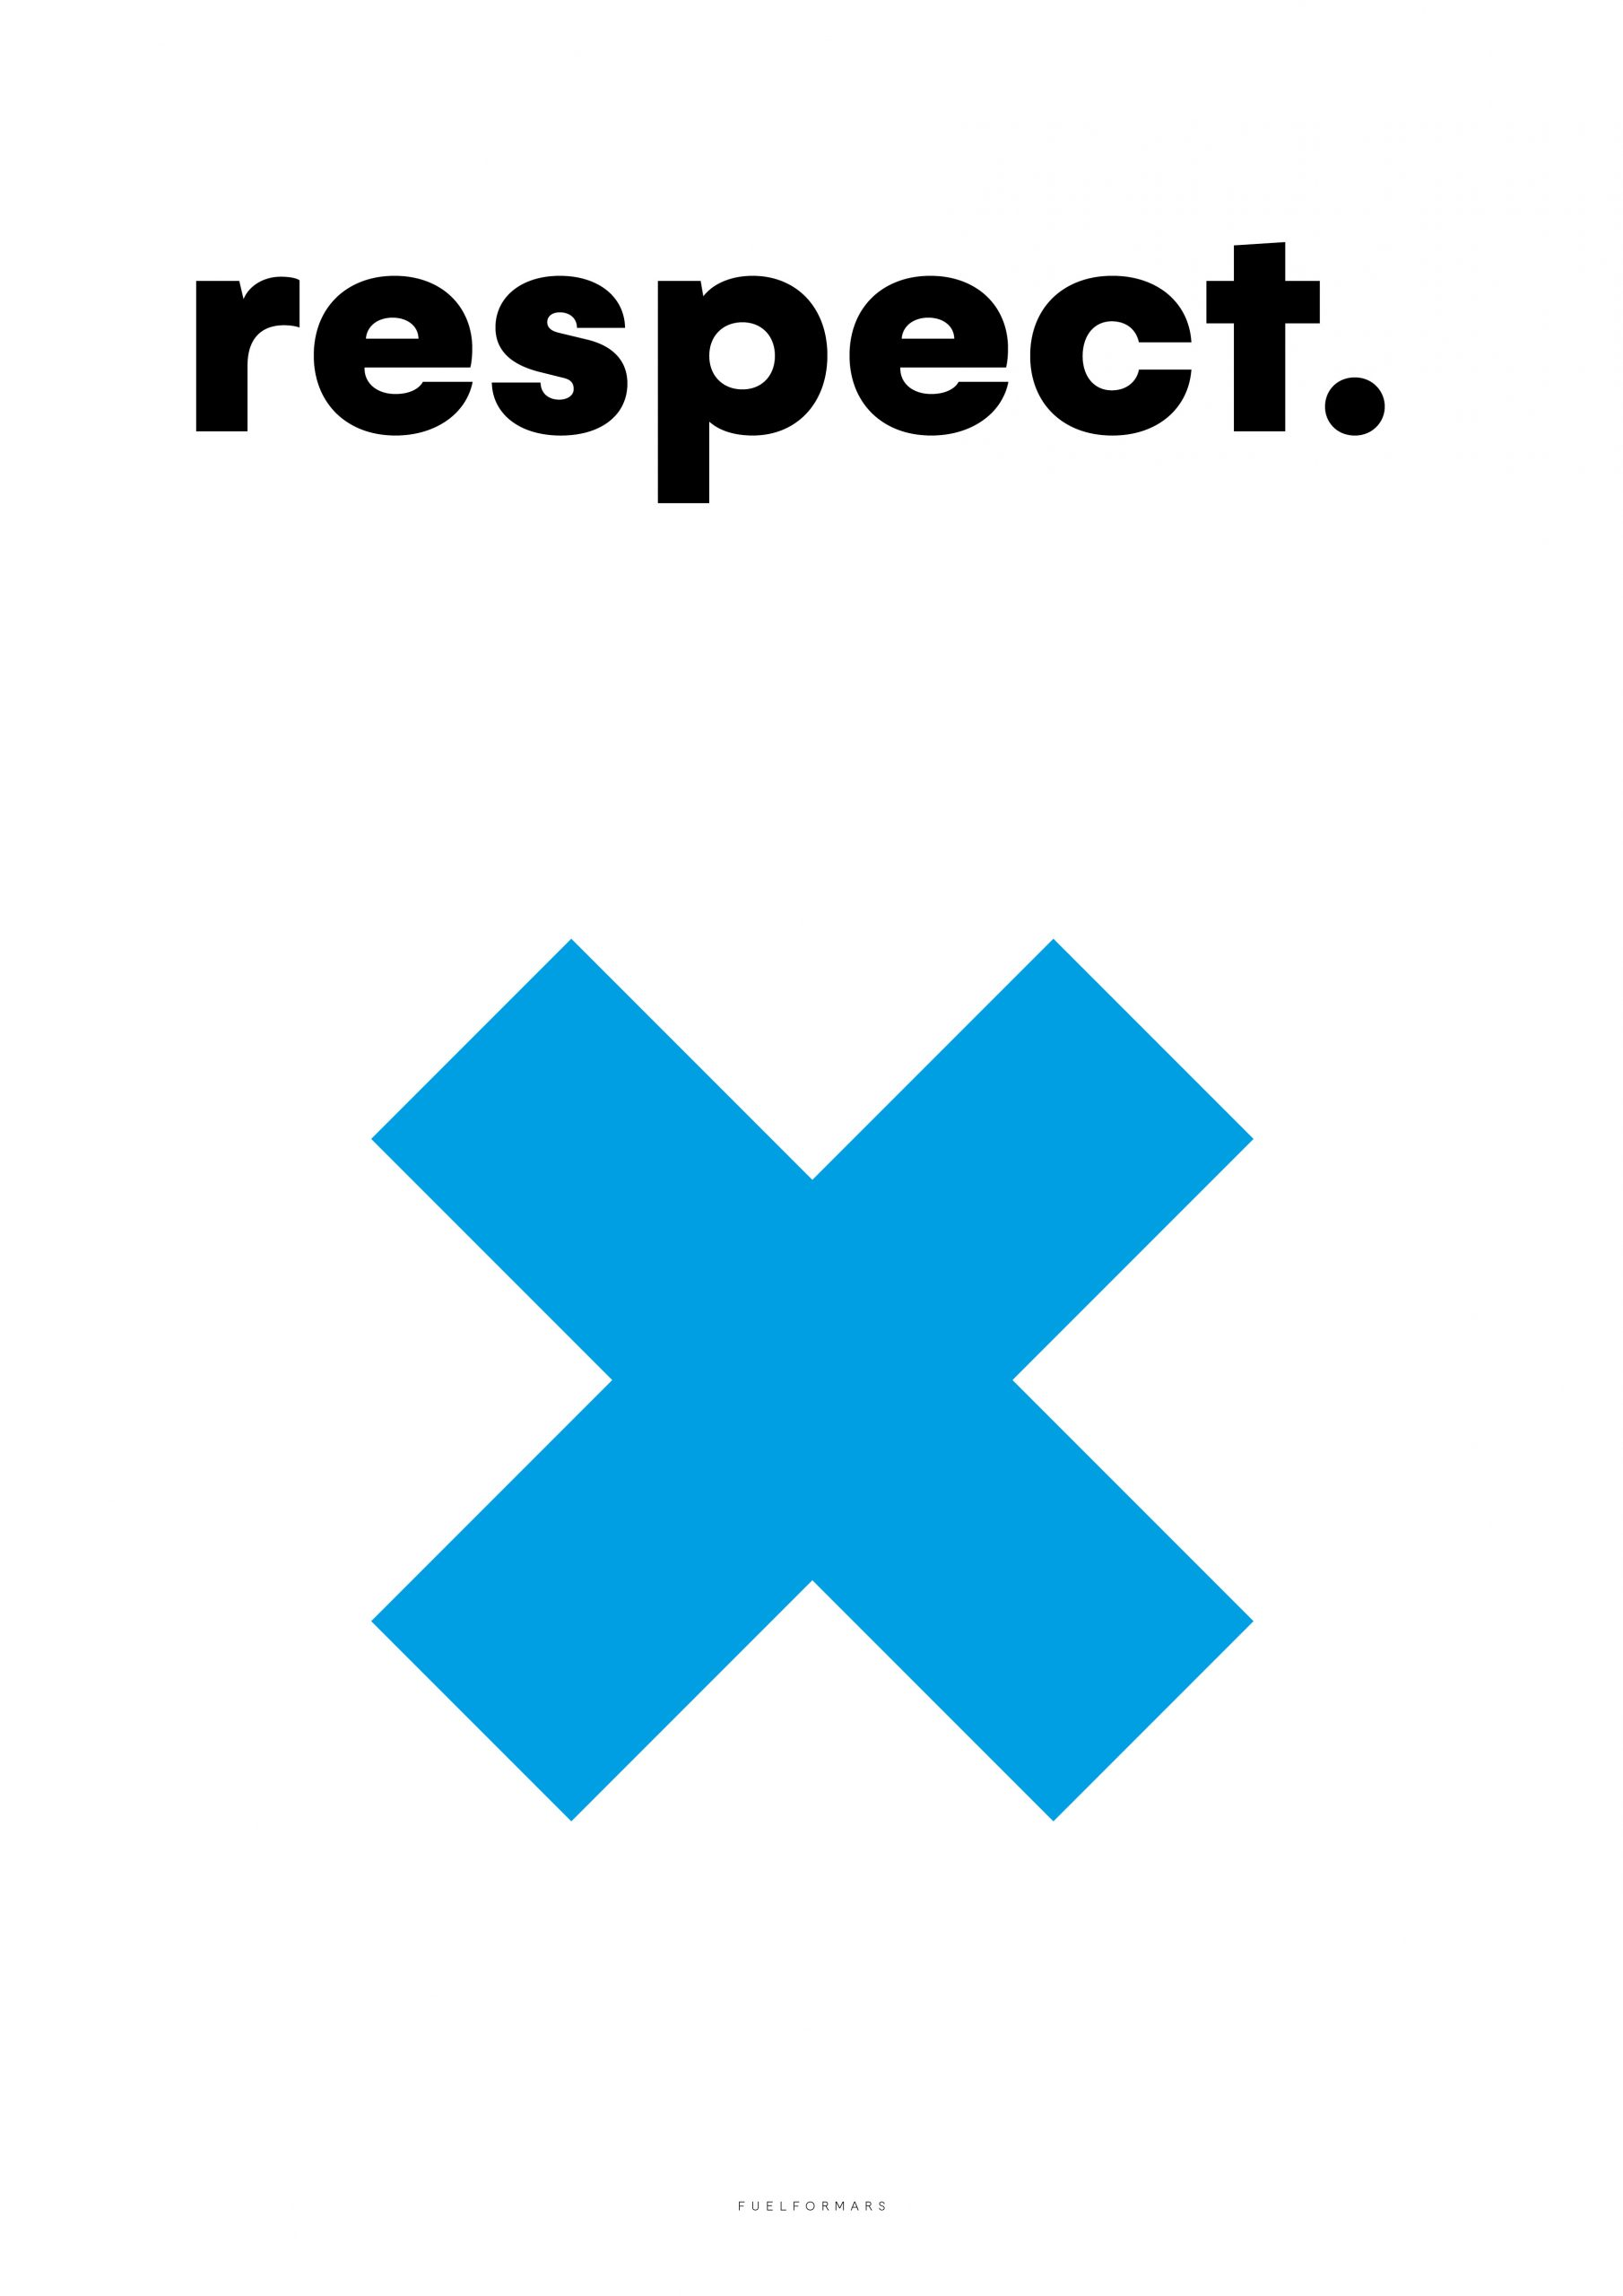 we see a blue cross with the word respect from fuel for mars